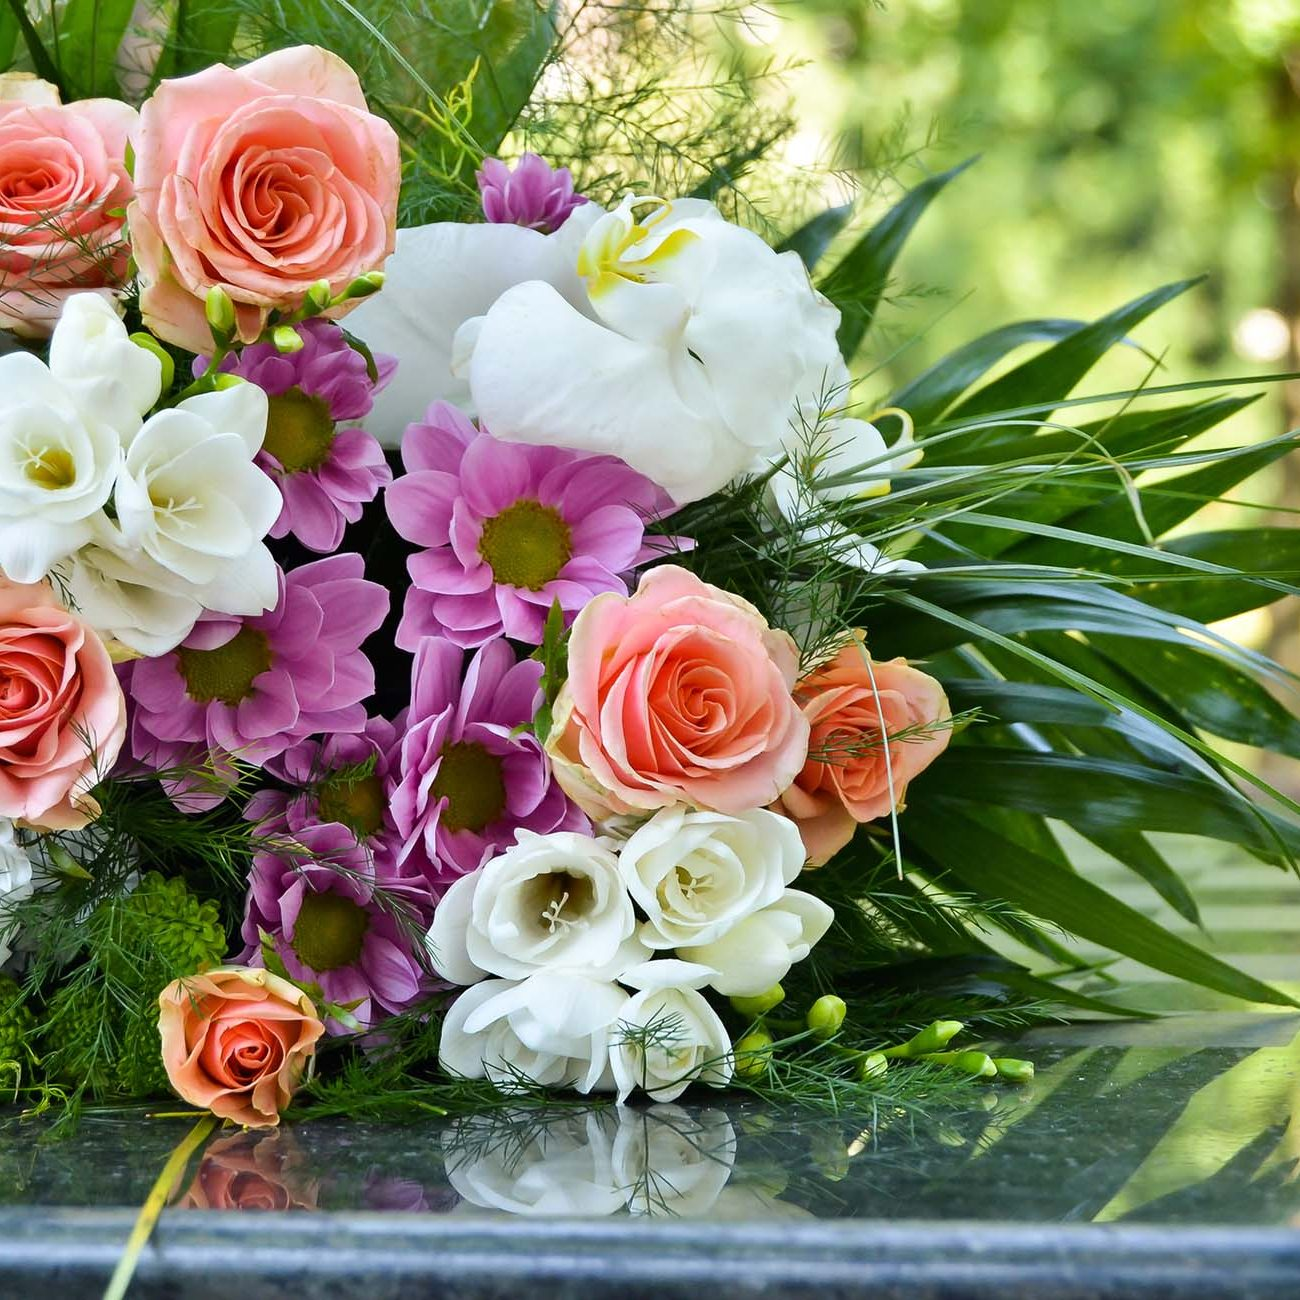 Wedding flowers on a table, outdoor